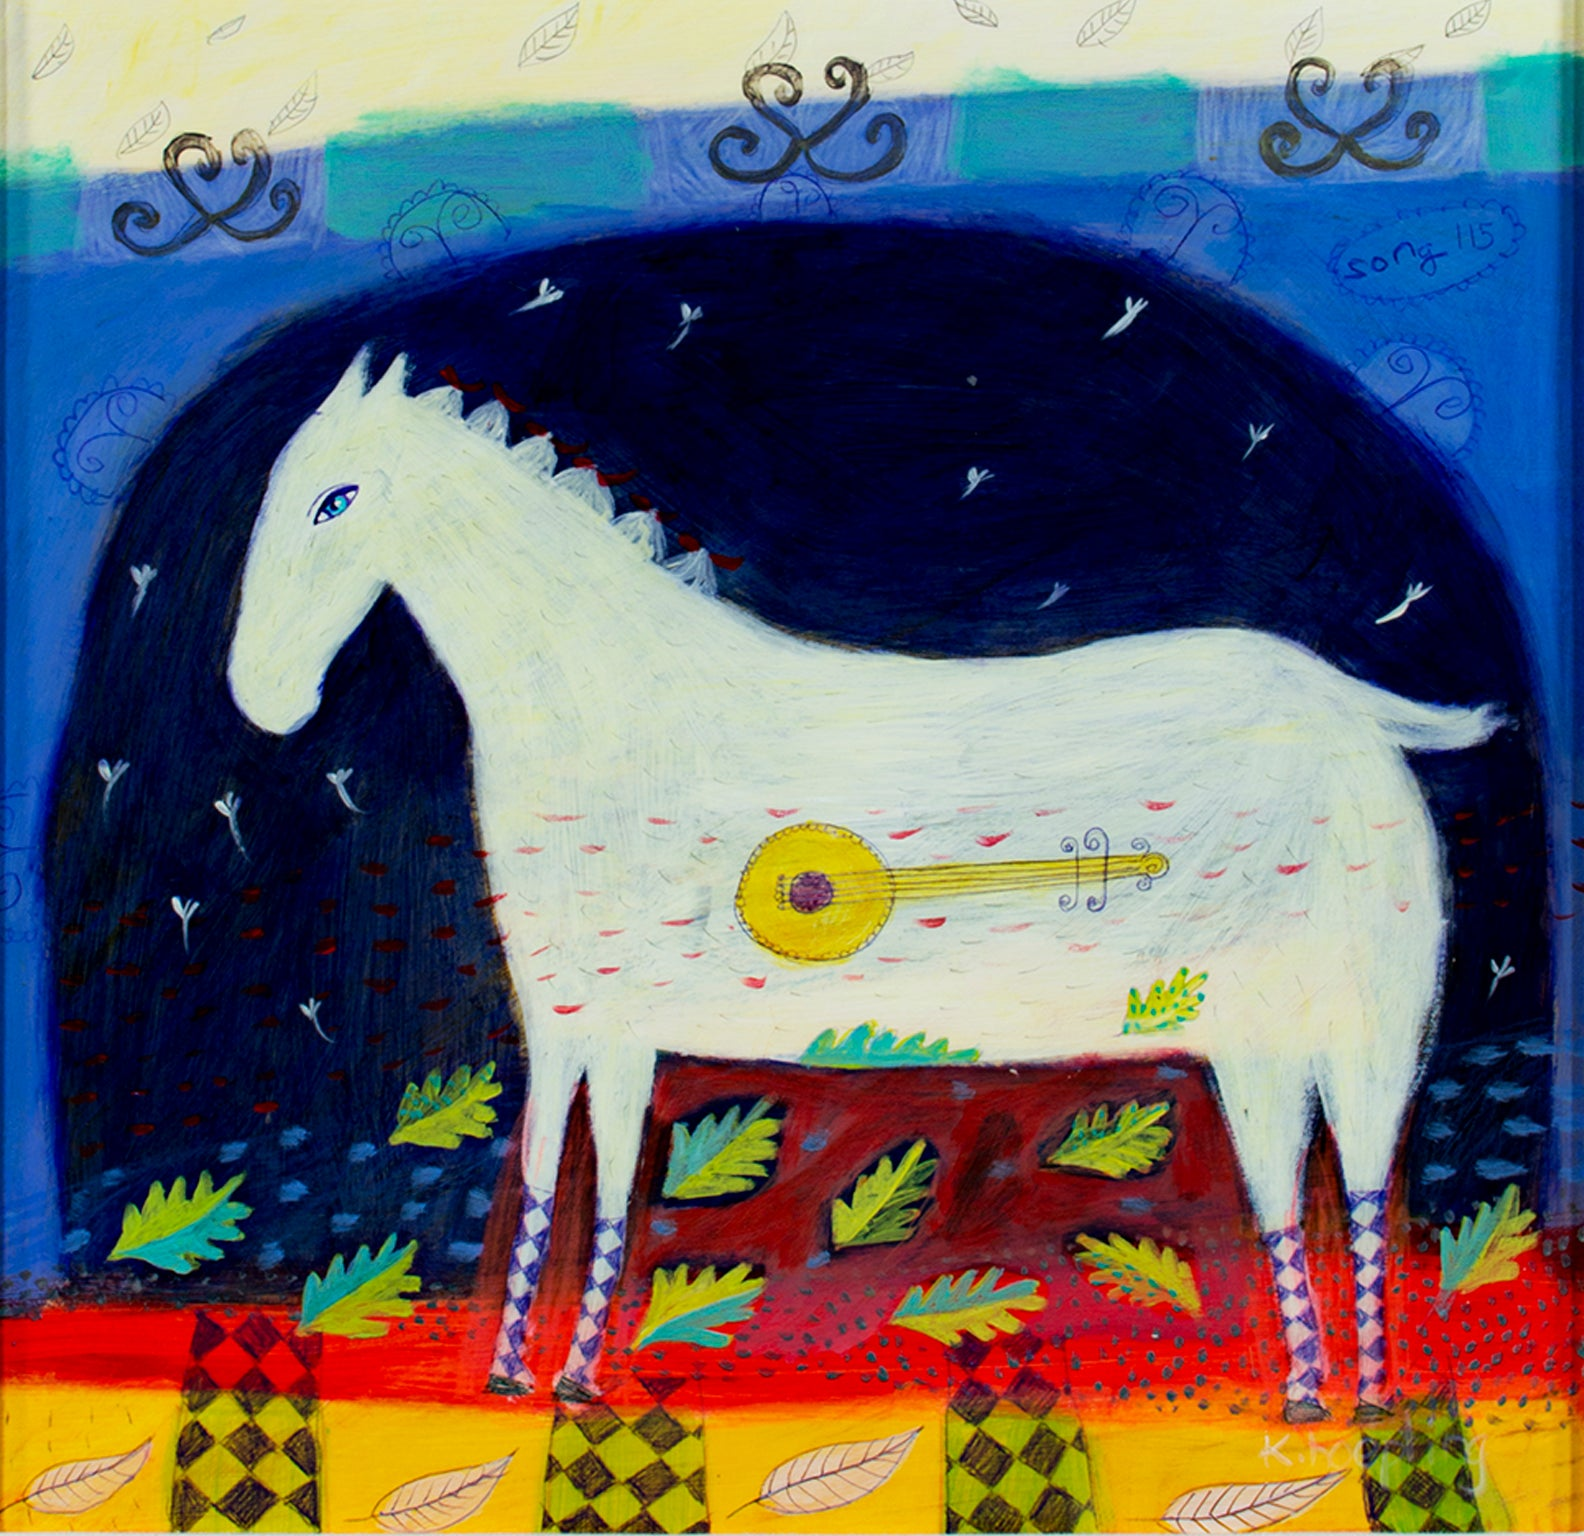 Karen Hoepting Song 115 Acrylic On Paper Expressionist Horse And Bango Signed By Karen Hopeting For Sale At 1stdibs